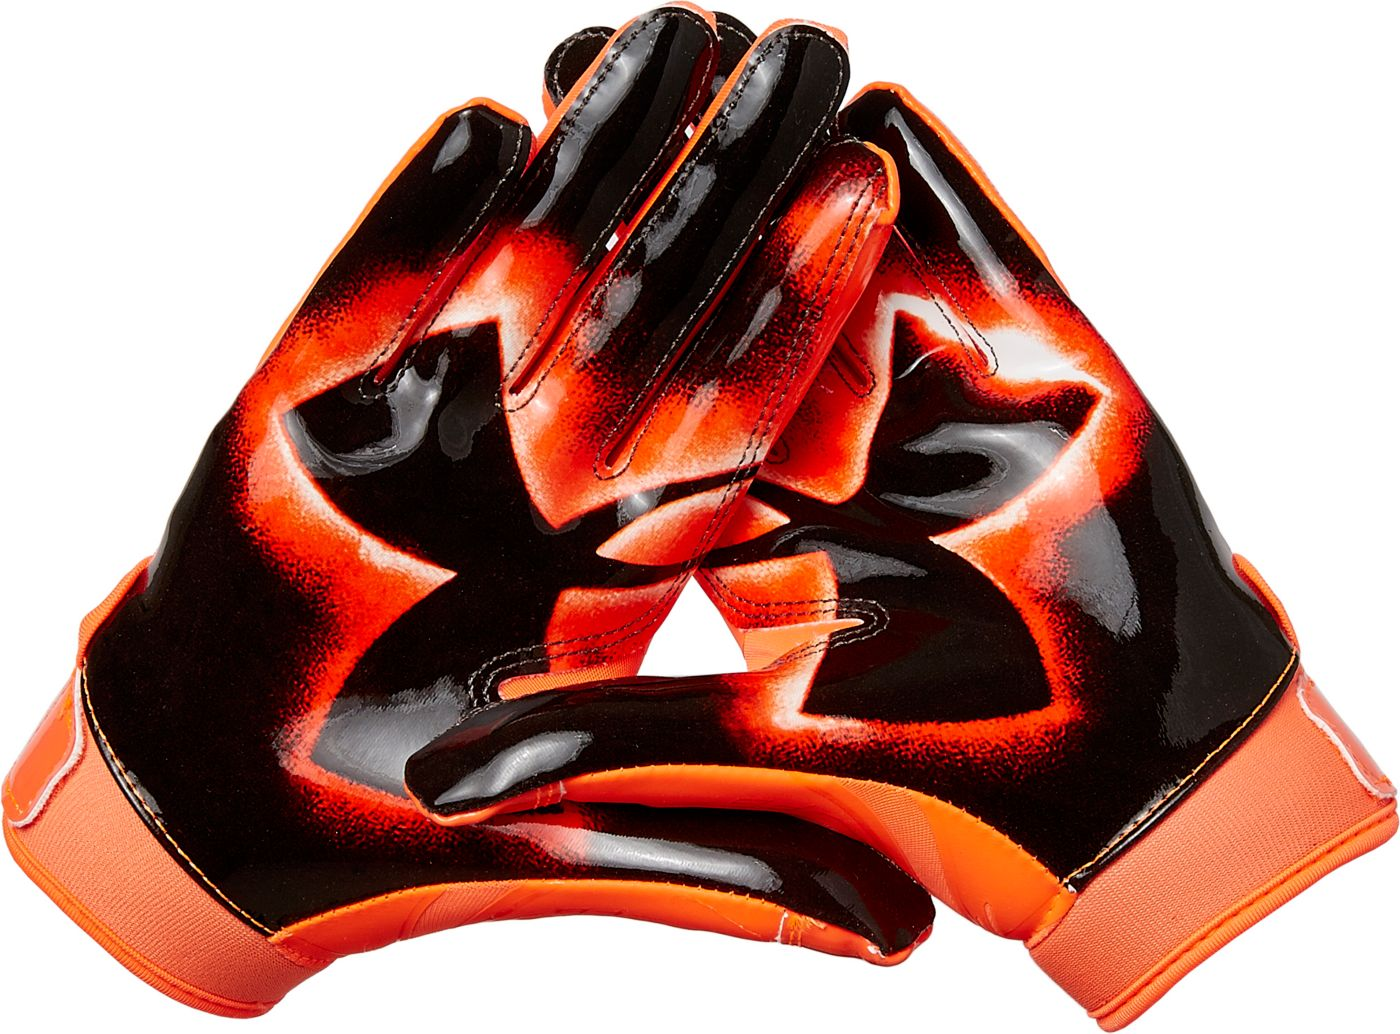 Under Armour Youth F6 Limited Edition Football Receiver Gloves